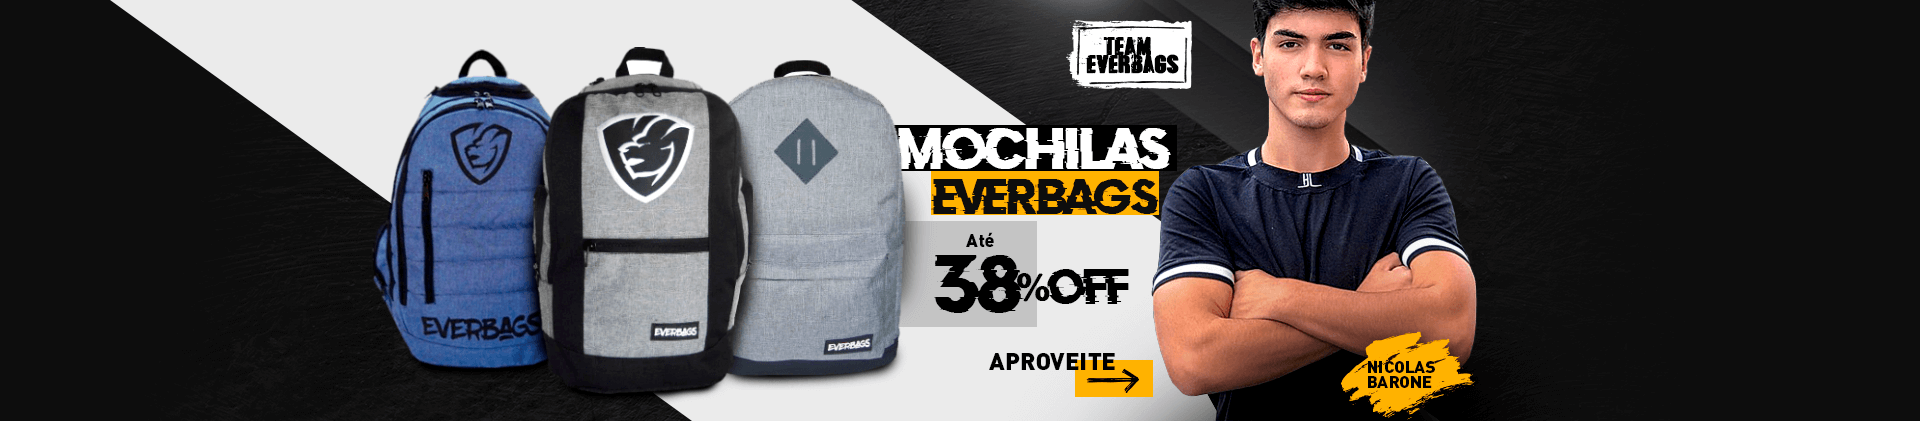 Mochilas Everbags